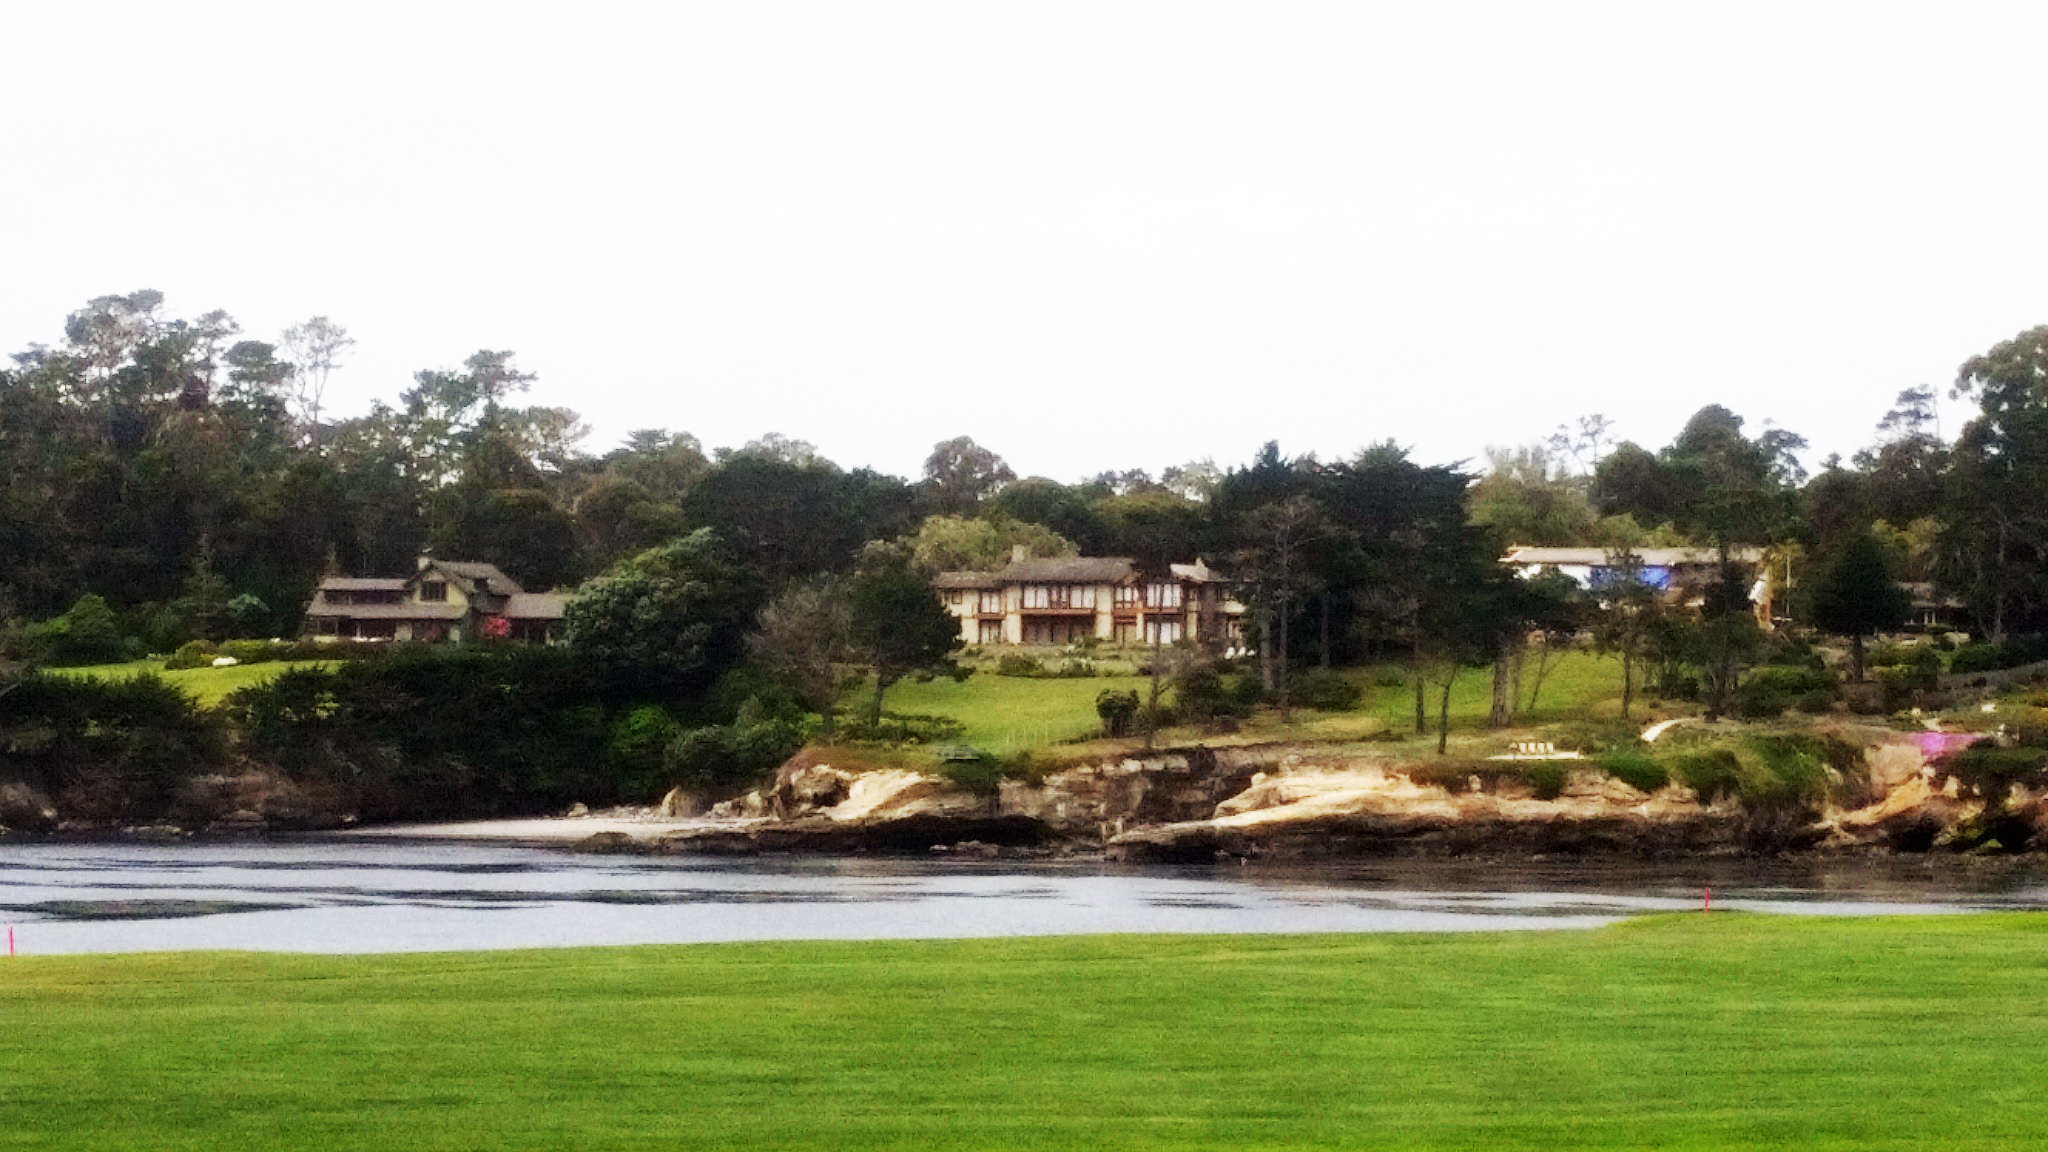 stillwater cove in pebble beach